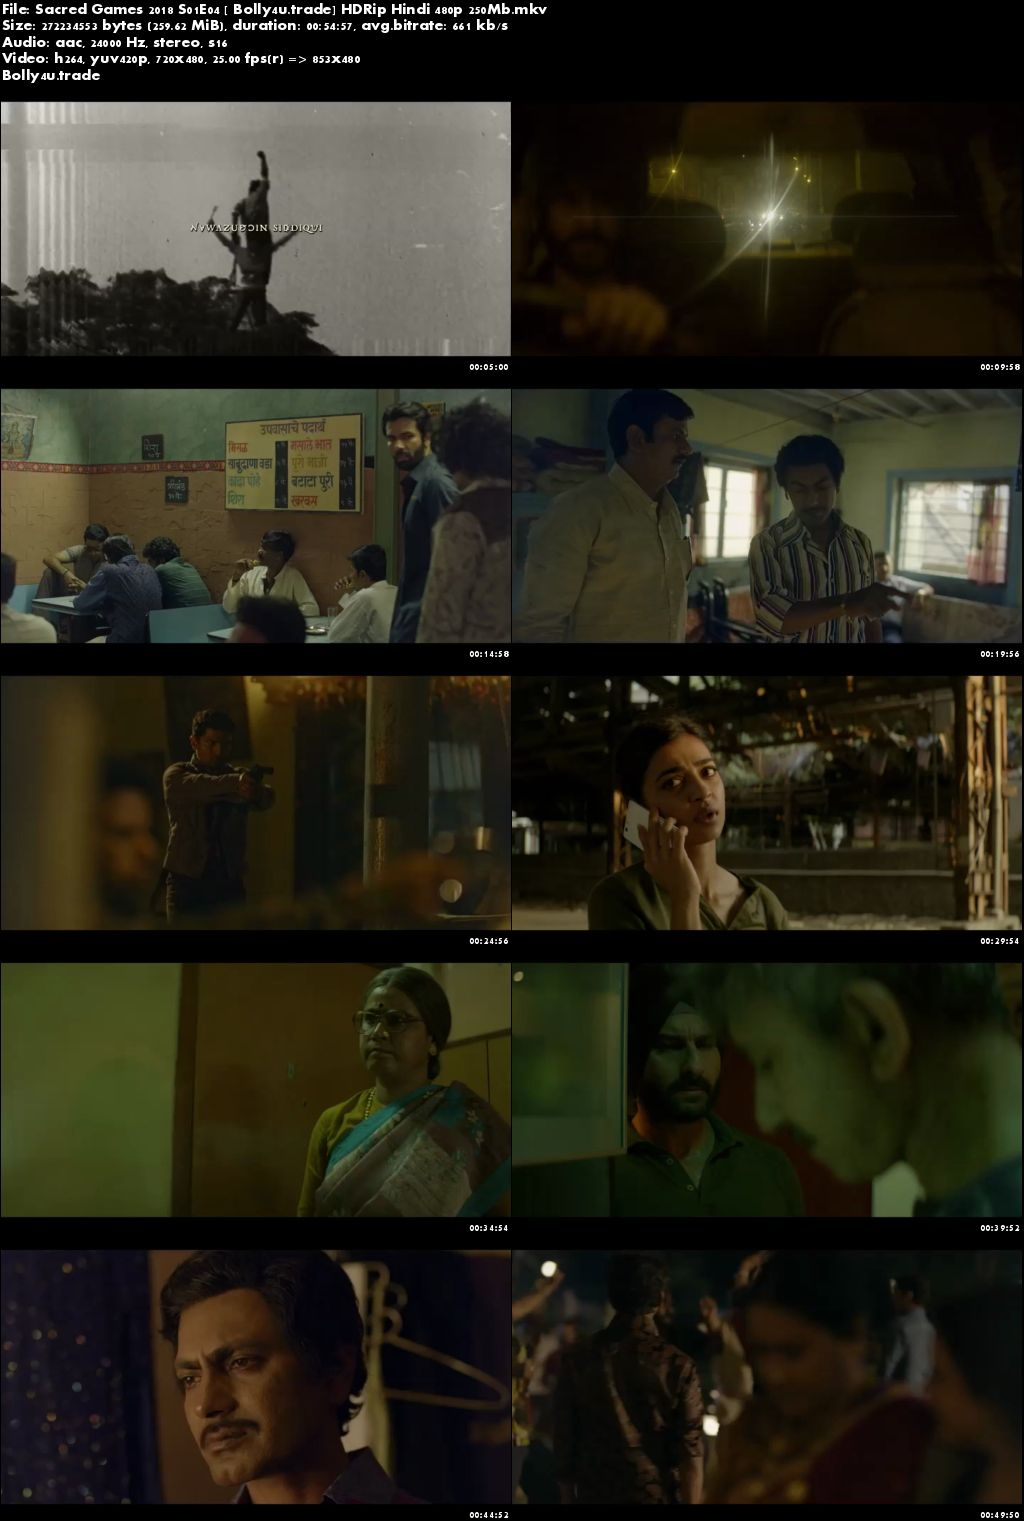 Sacred Games 2018 S01E04 HDRip 250MB Hindi 480p Download